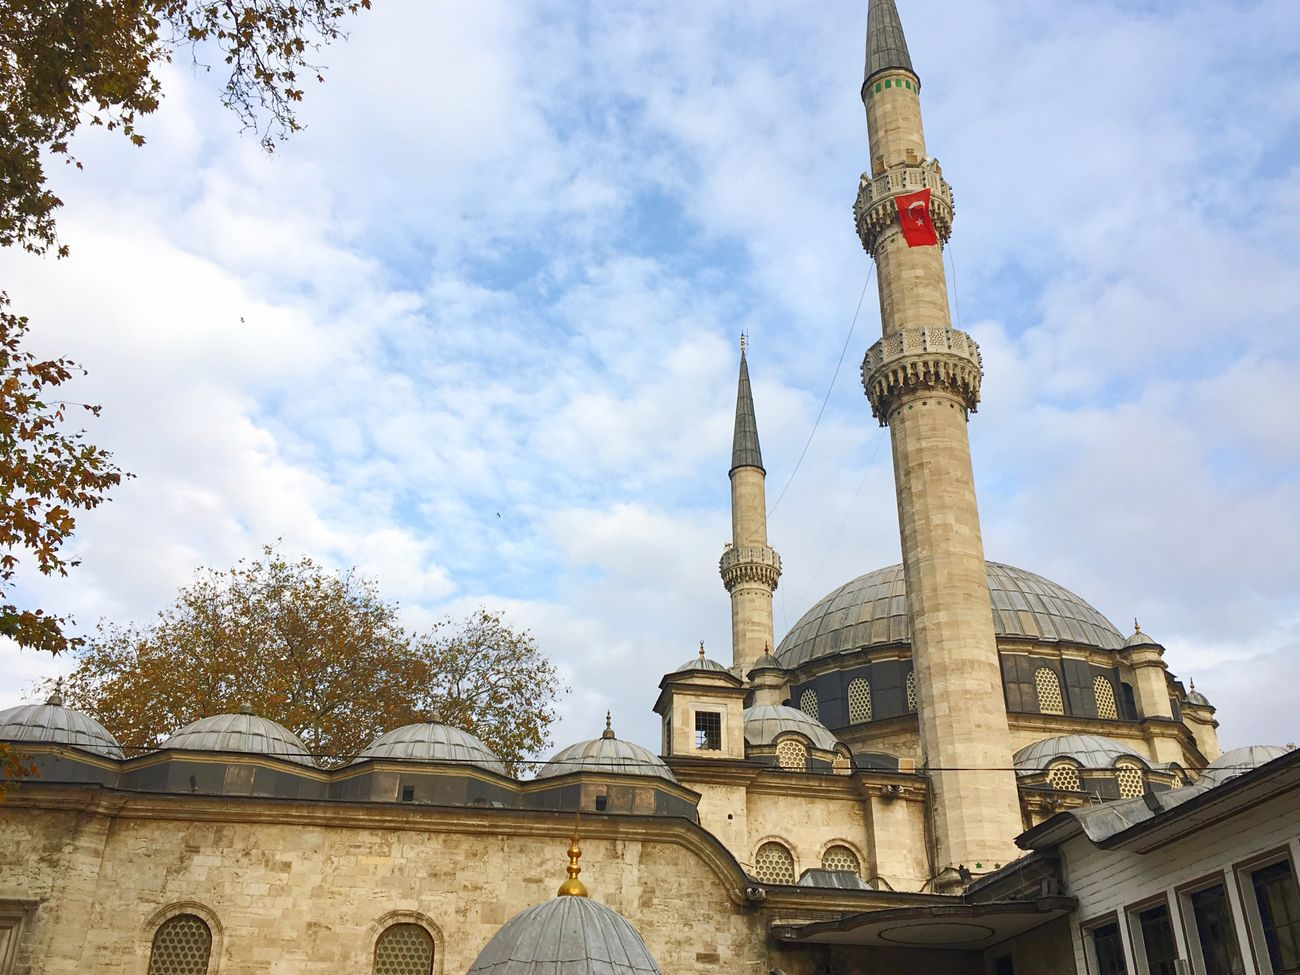 Religion Architecture Spirituality Built Structure Place Of Worship Building Exterior Sky Low Angle View Travel Destinations Dome Outdoors Day No People Travel Turkey Journey Byme Mosque Eyup Sultan Cloud - Sky Blue Sky